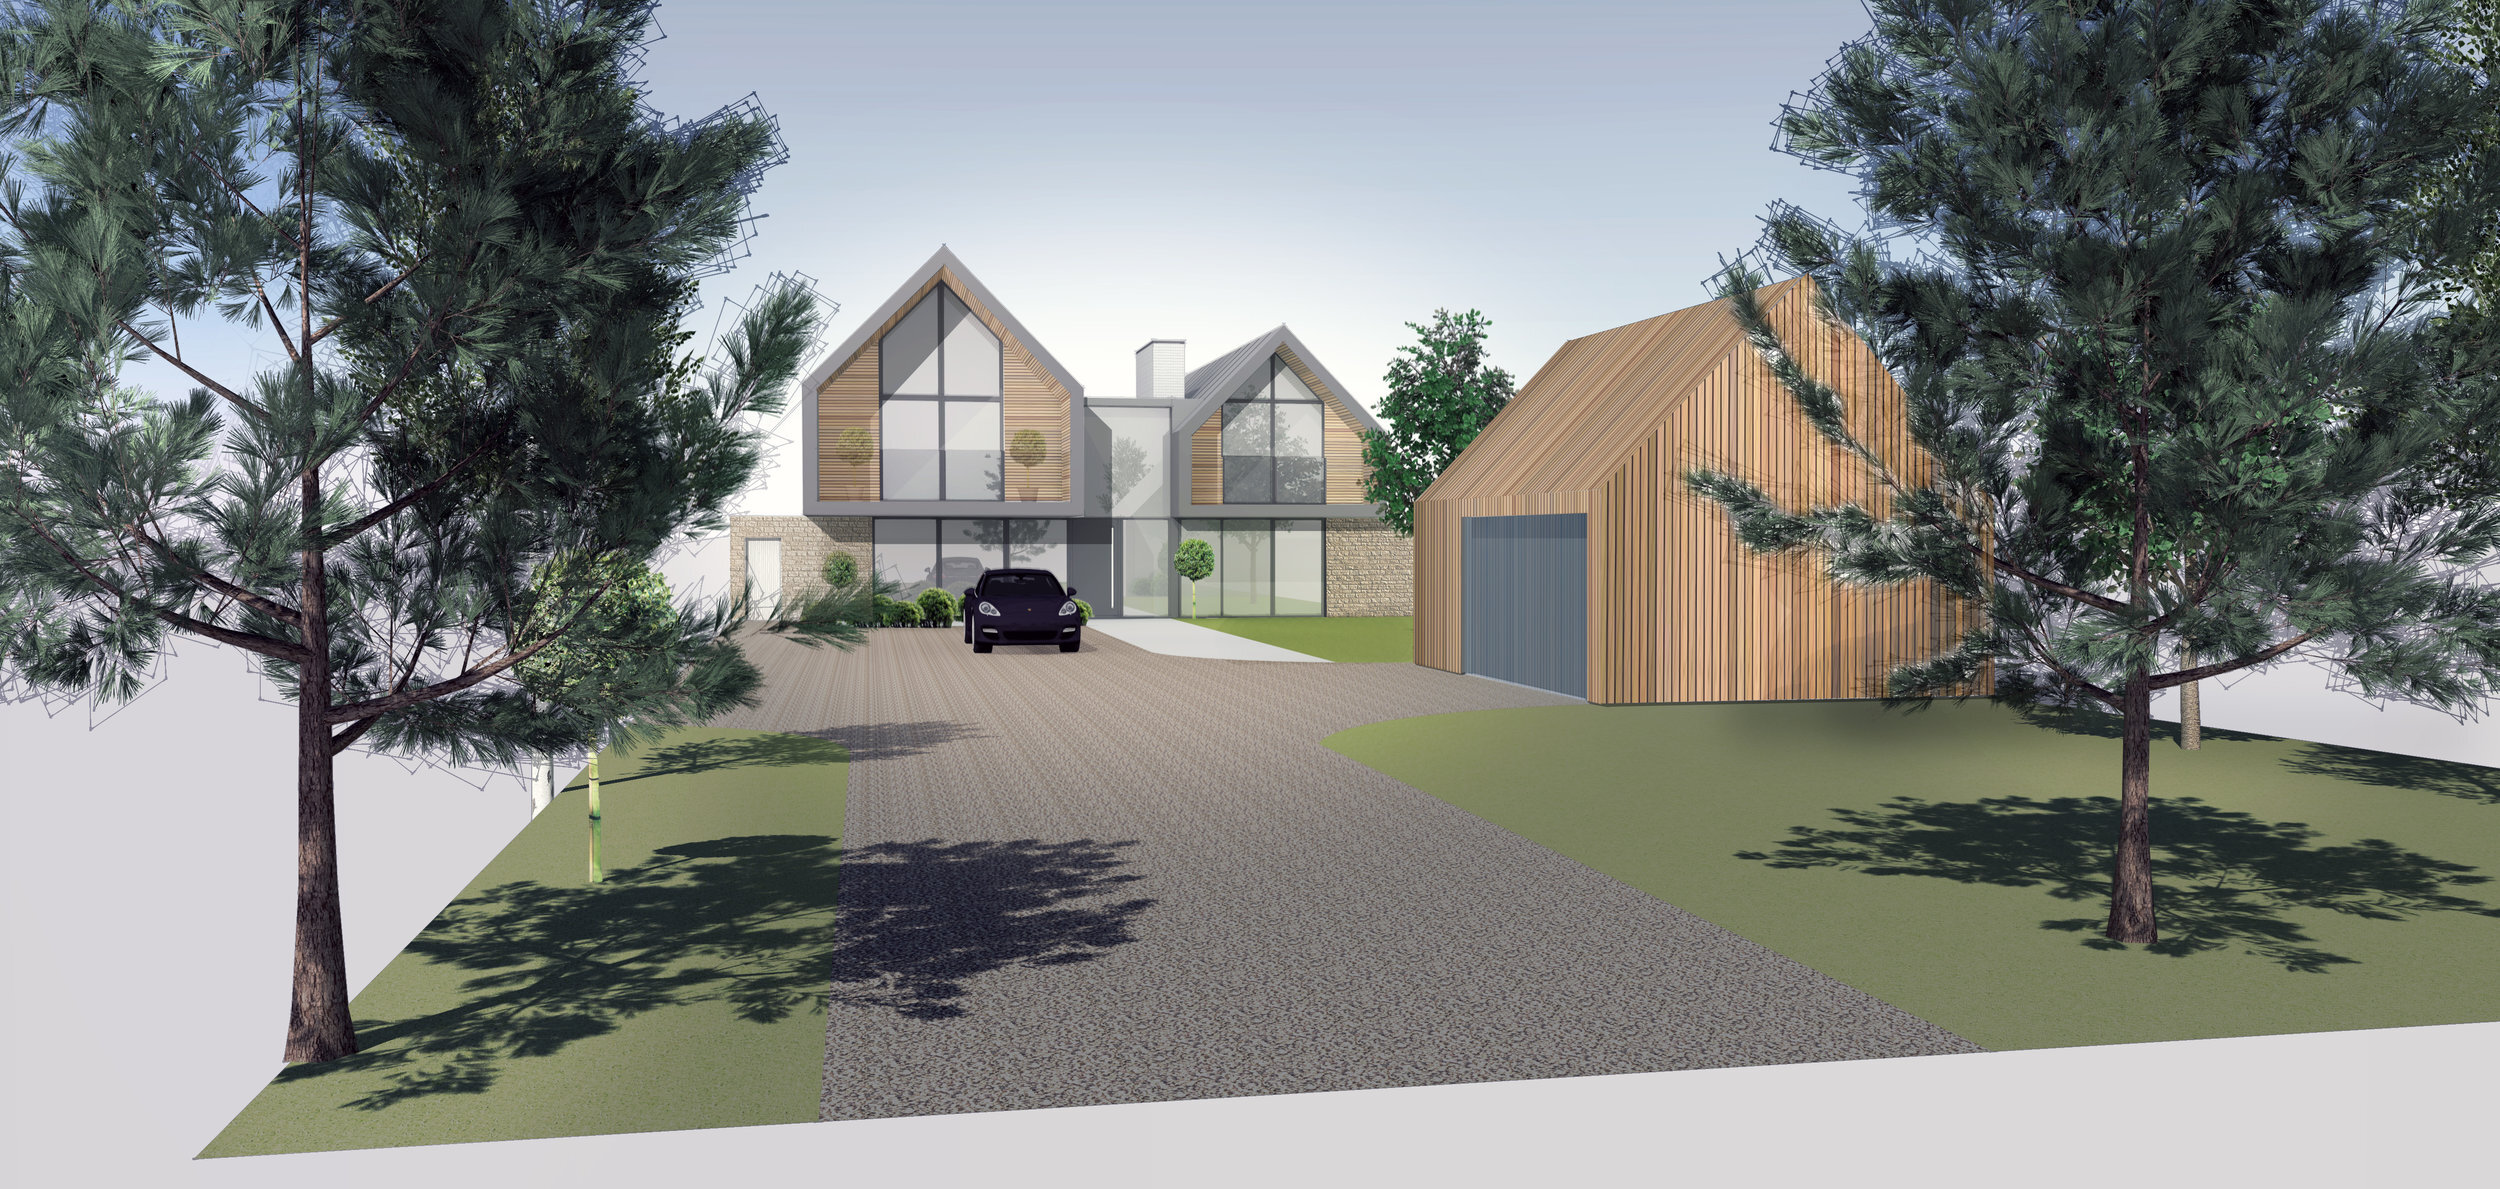 abear+&+ball+architects+-+Larch+House+-+Contemporary+Dwelling+-+A'bear+and+Ball+Architects.jpg